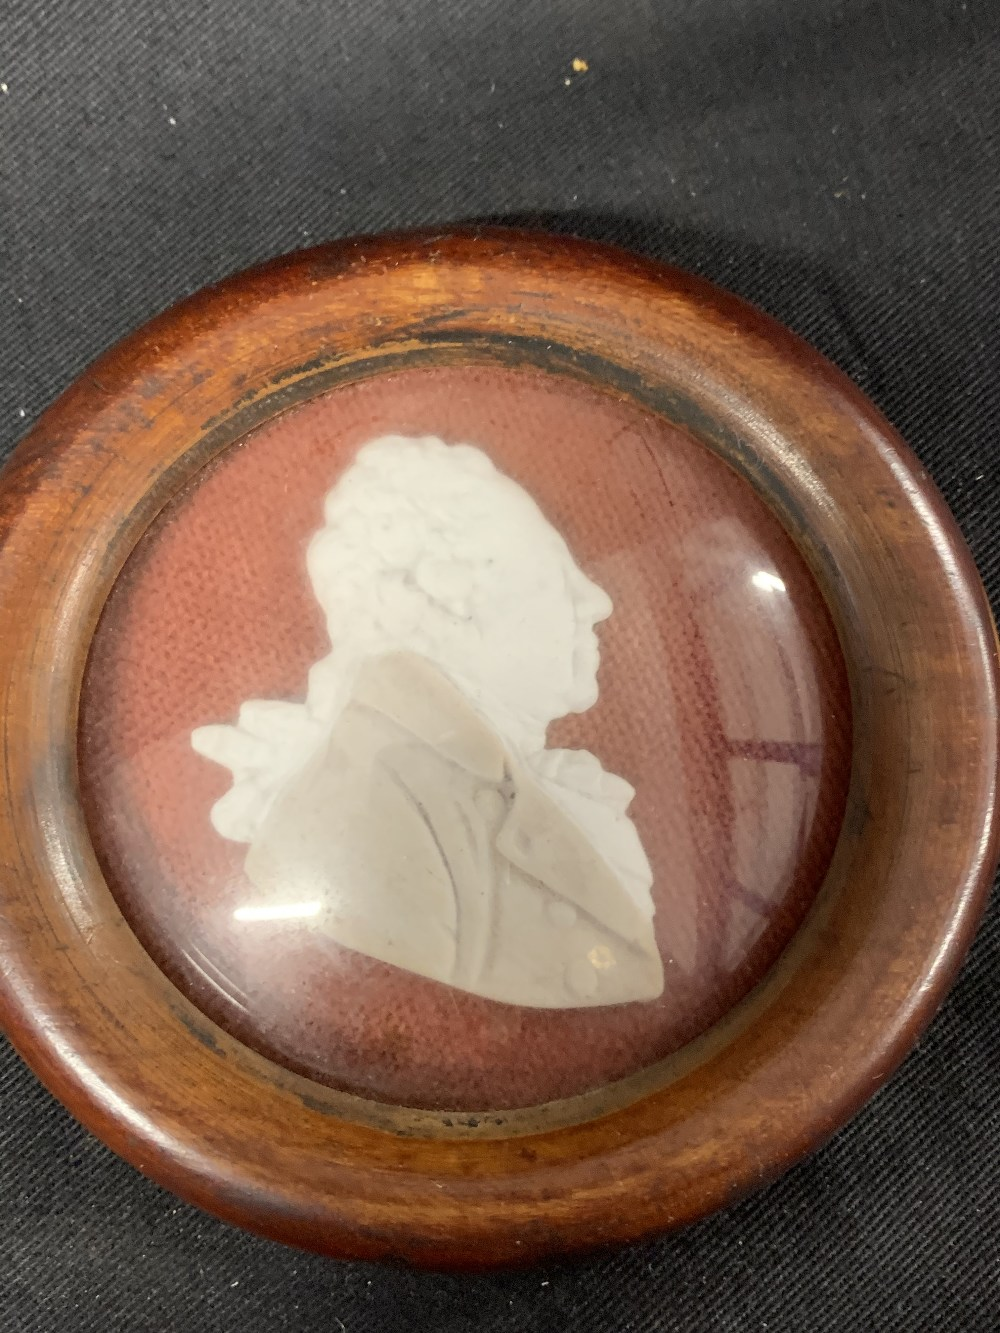 Lot 576 - English School: 19th cent. Wax relief bust portraits of historical figures including Nelson and